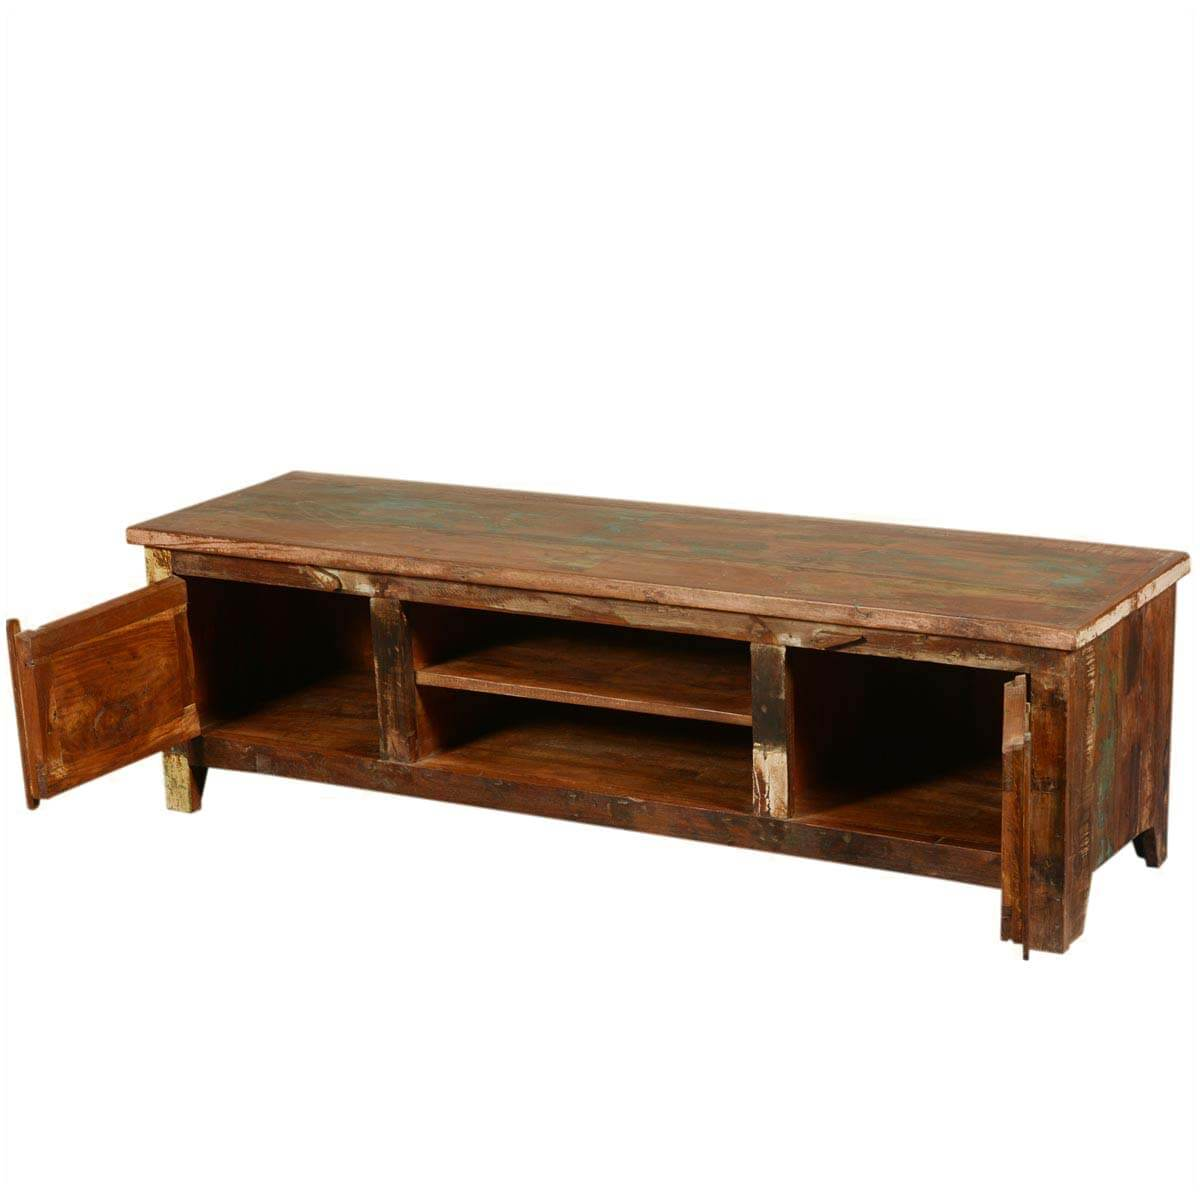 new memories reclaimed wood 59 rustic media console